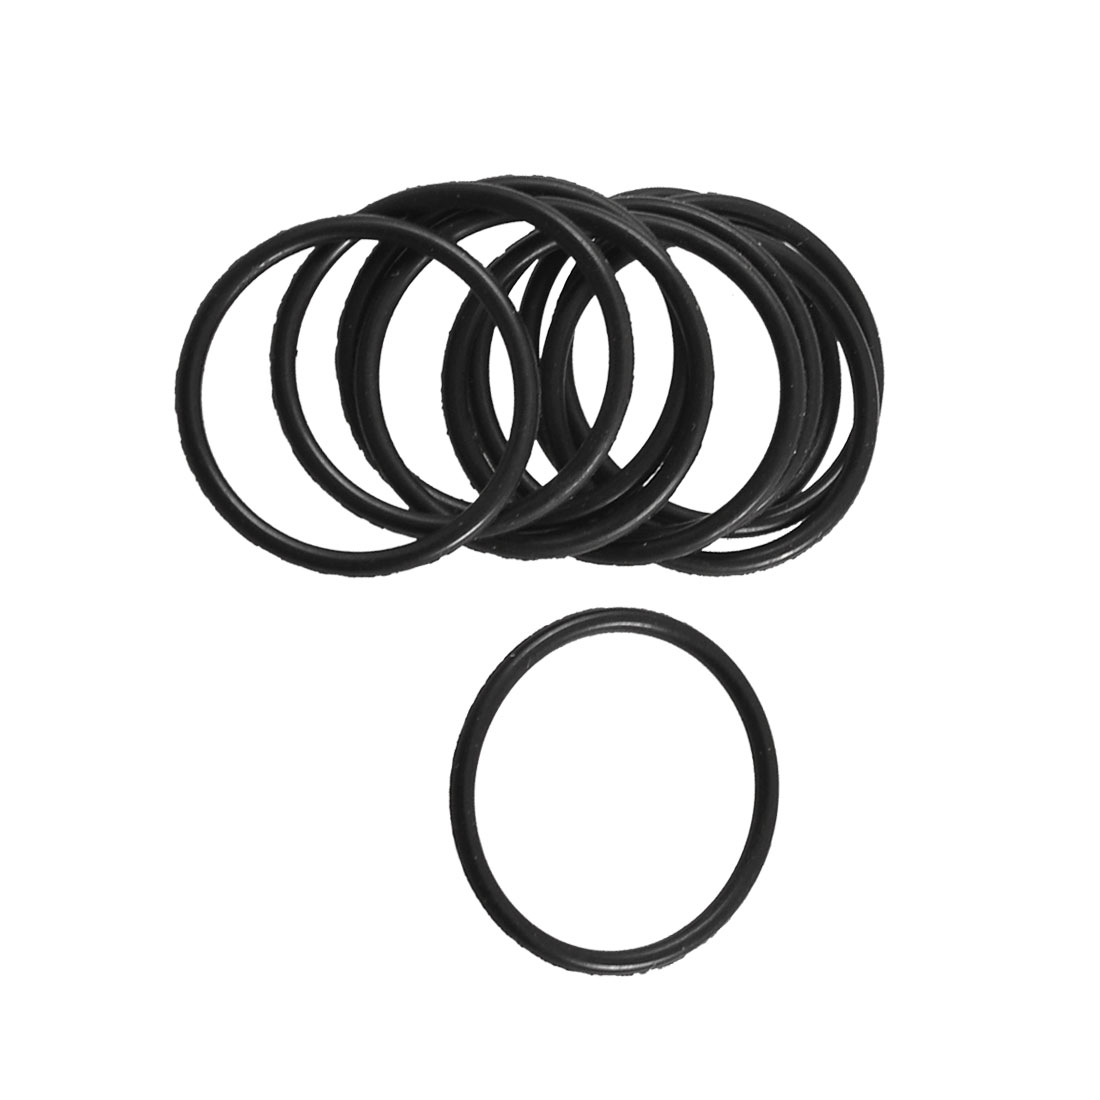 27mm x 22mm x 2.5mm 10 Piece Uxcell Rubber O Rings Oil Seal Gasket Washer Replacement